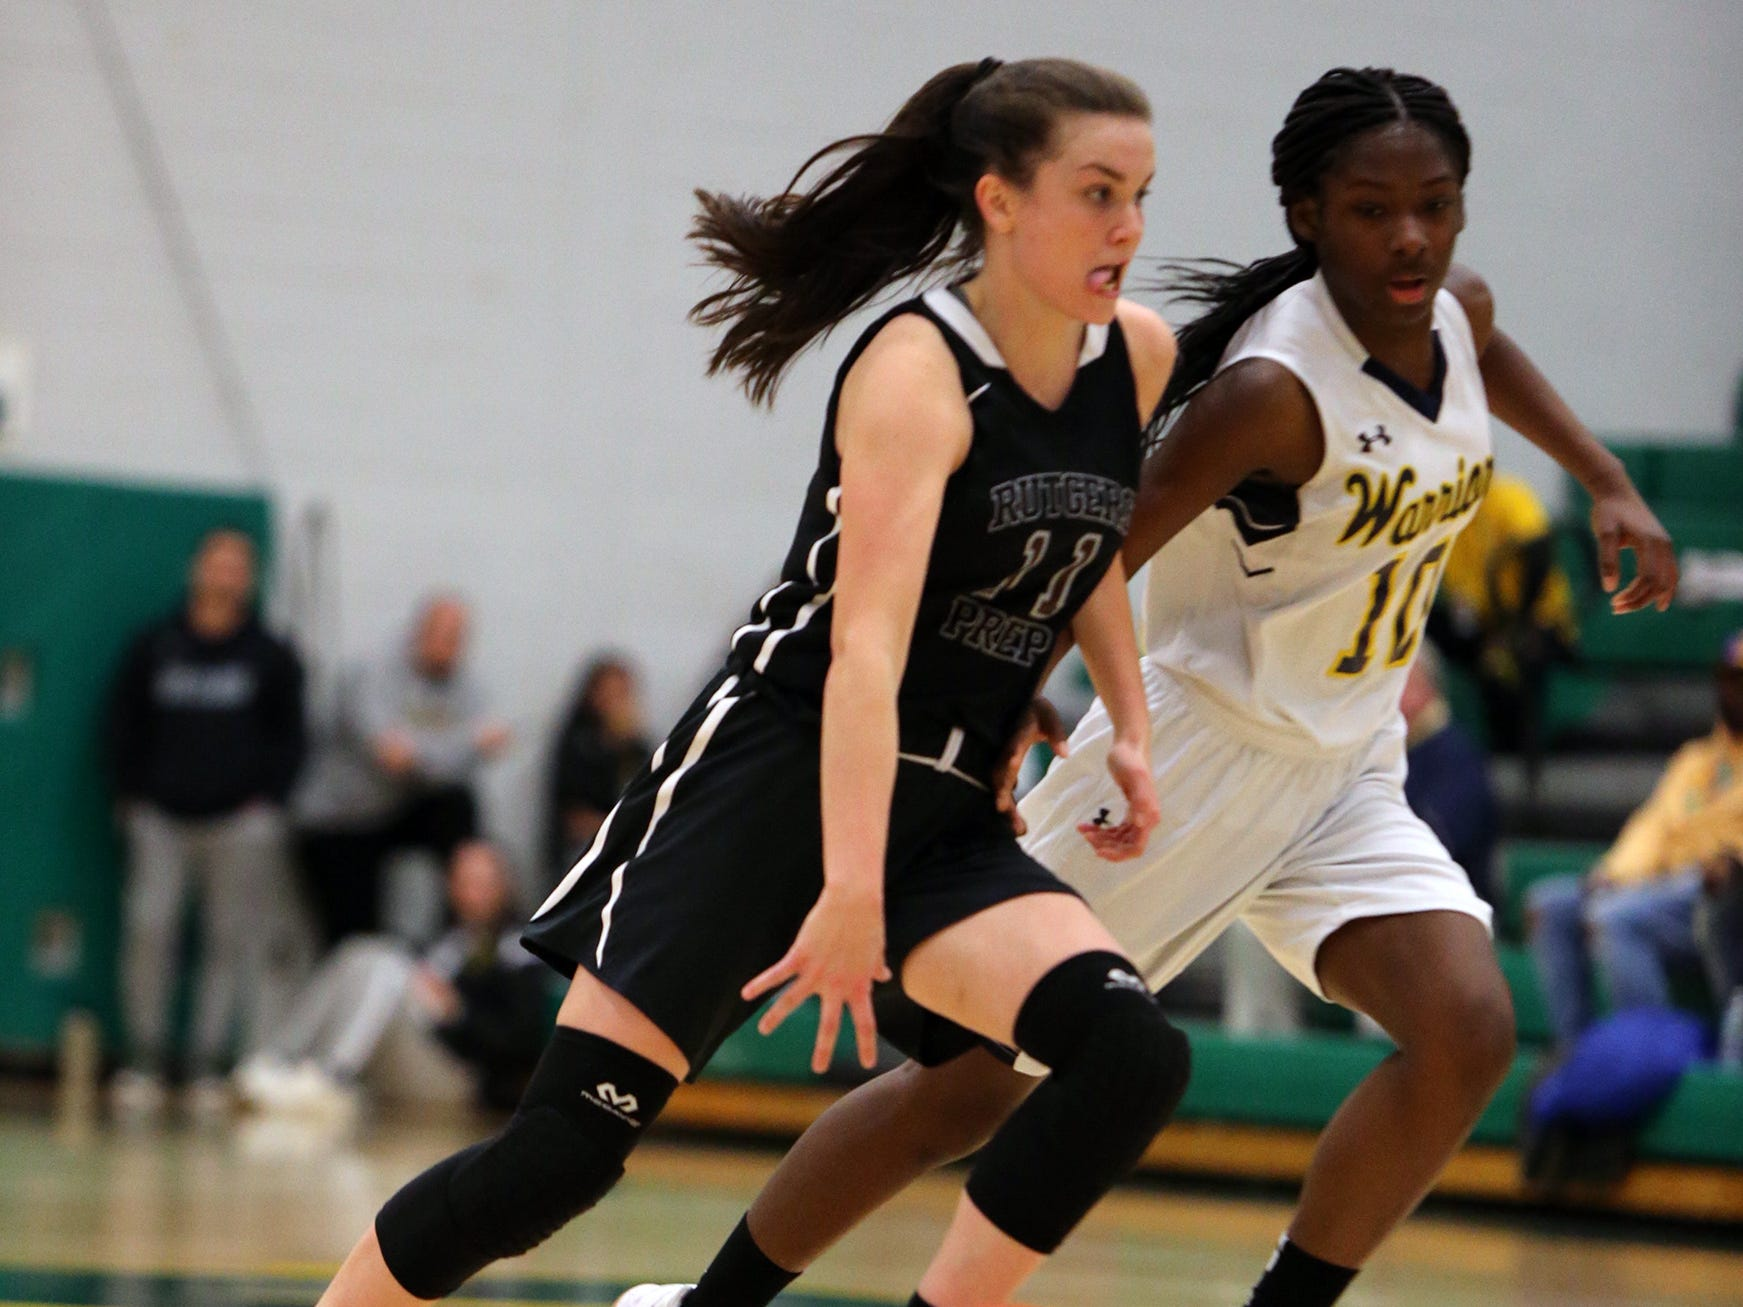 Franklin vs. Rutgers Prep girls basketball in the Somerset County Tournament final on Saturday, Feb. 23, 2019 at Montgomery High School.